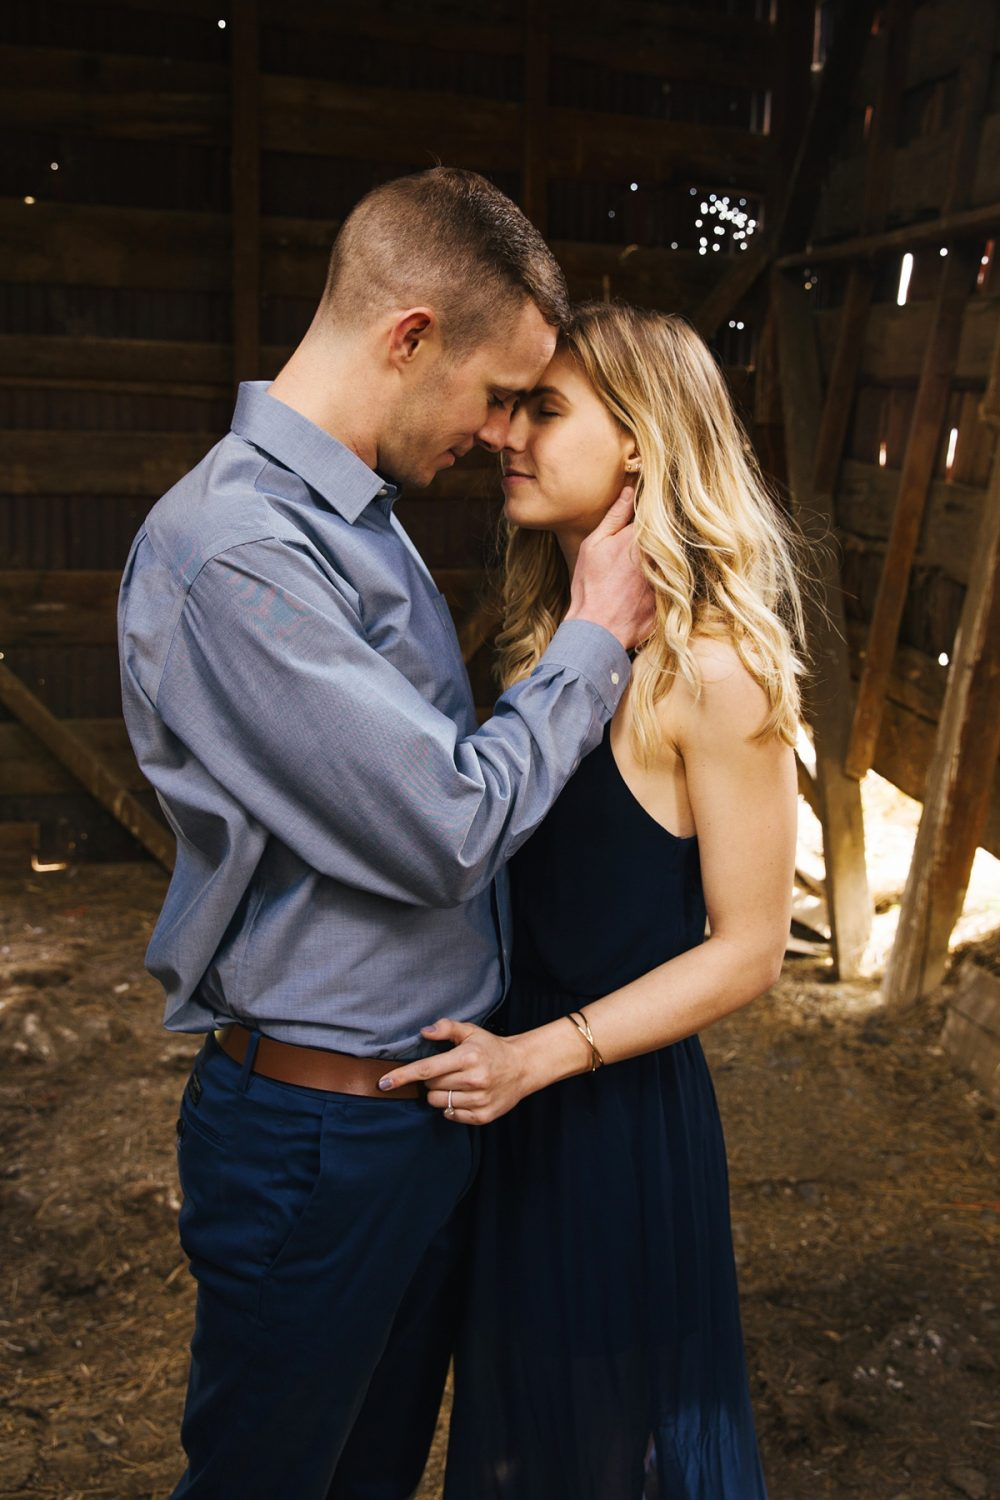 Abandoned house, abandoned house engagement, engagement photography, engagement pictures, spooky engagement, abandoned farm house, farm engagement, farm house engagement